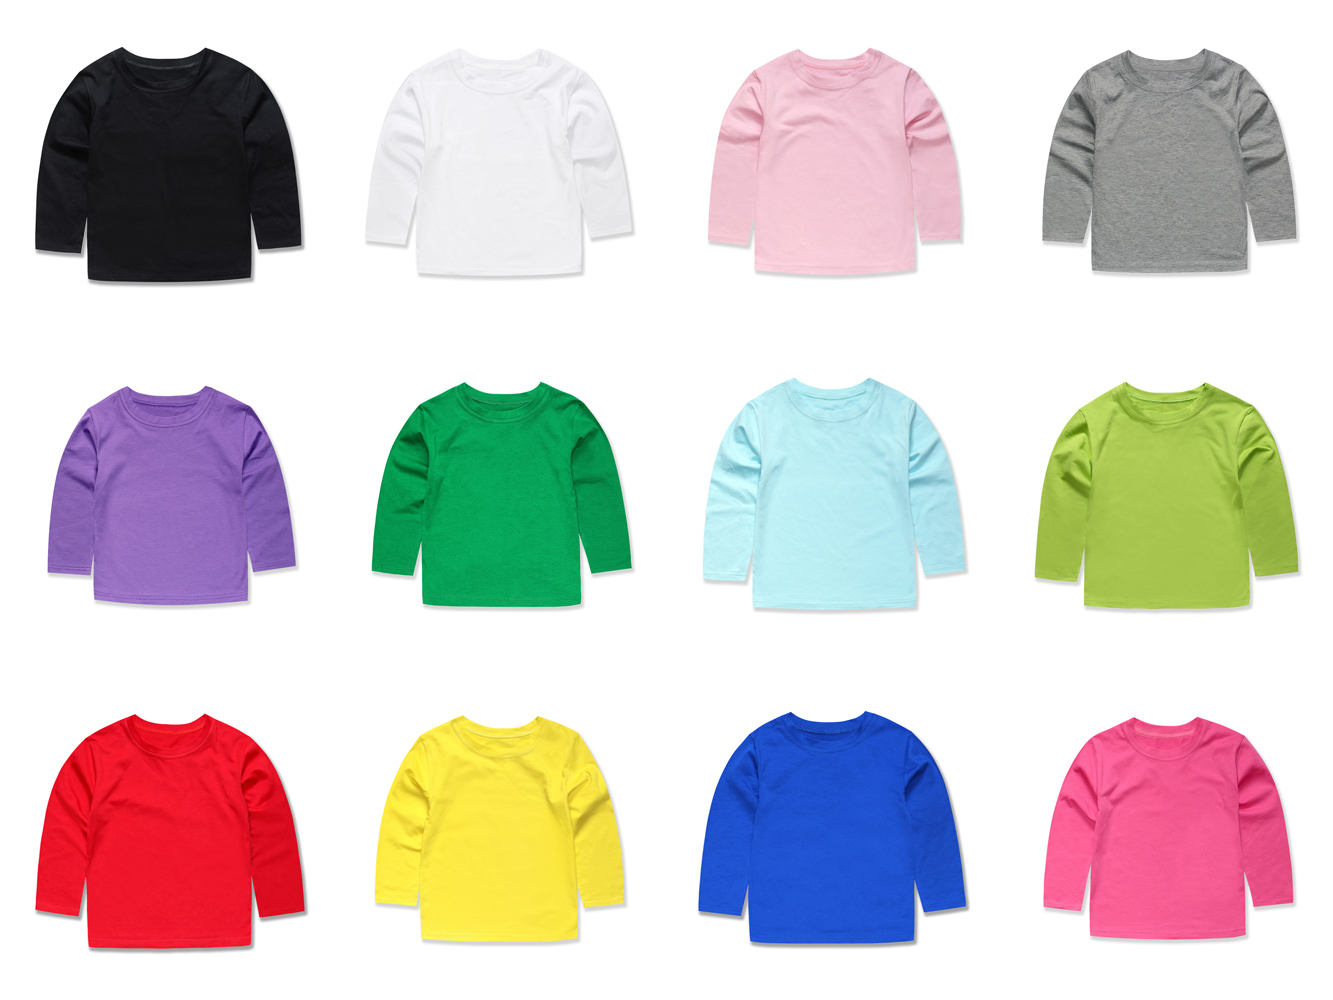 Best Kaos Polos Cewek Ideas And Free Shipping B6a1fa1a